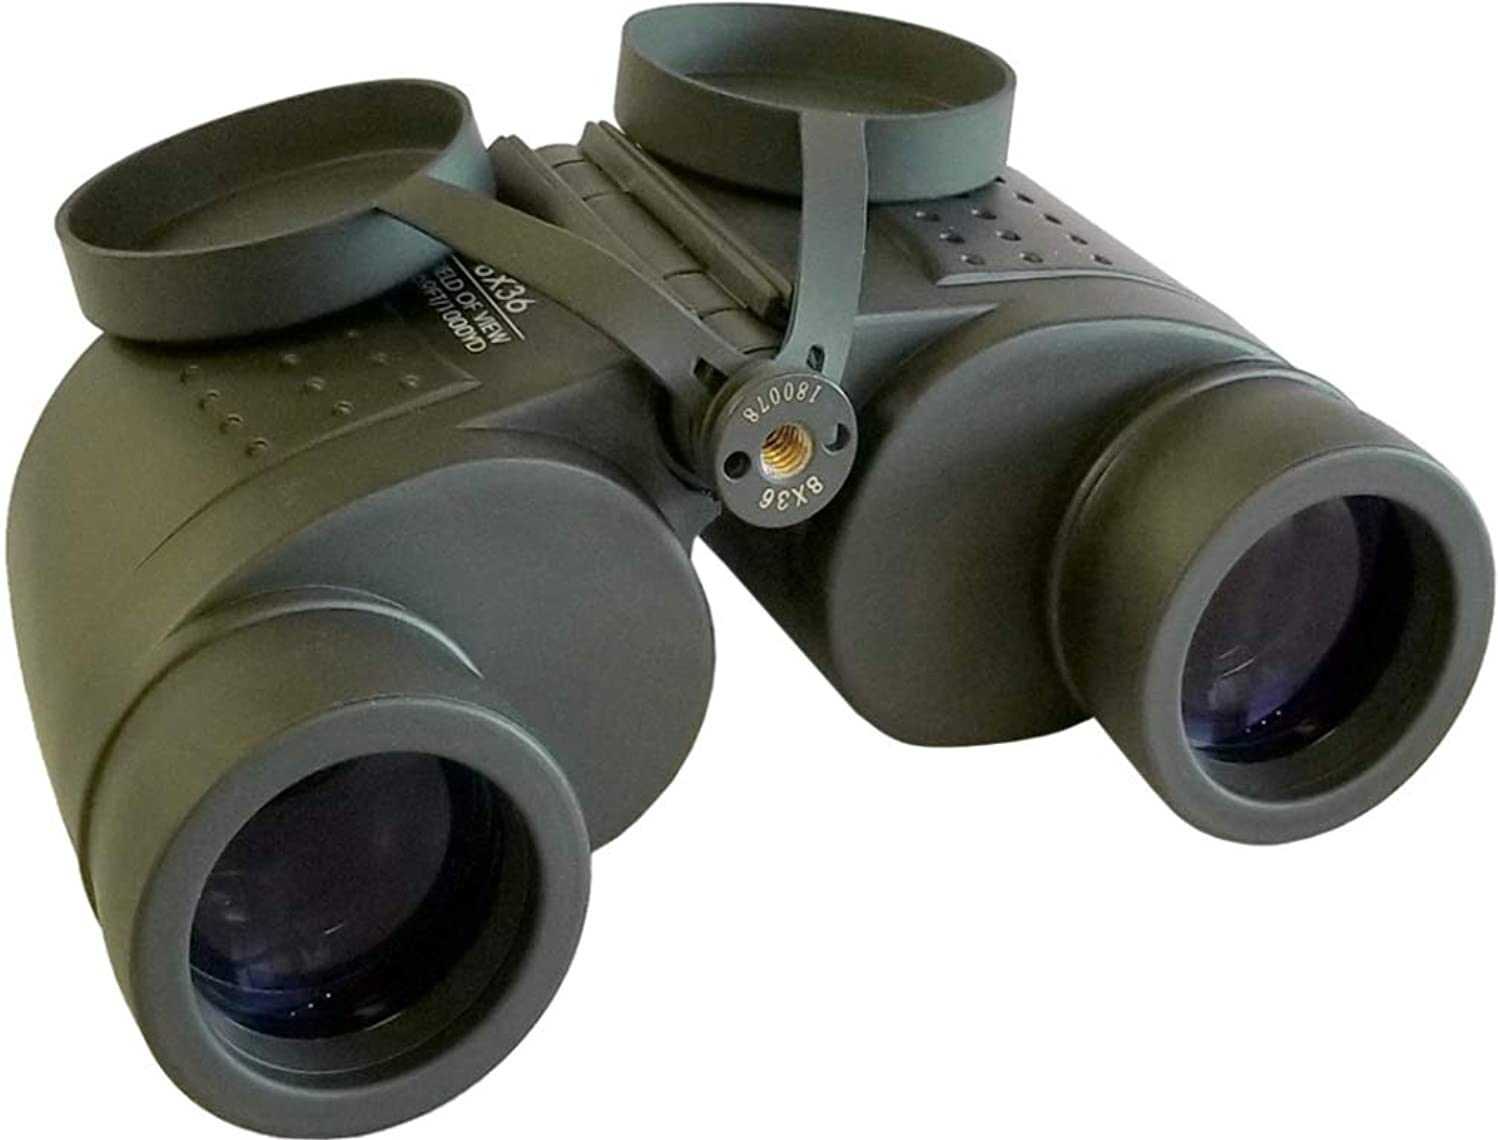 PRG Defense 4407XX50PRGMSB Model 7x50B Daytime Binoculars, 7X Magnification, 50mm Objective Lens Diameter, 7.5° FOV, 7.1mm Exit Pupil, 23mm Eye Relief, ≤ 4.5